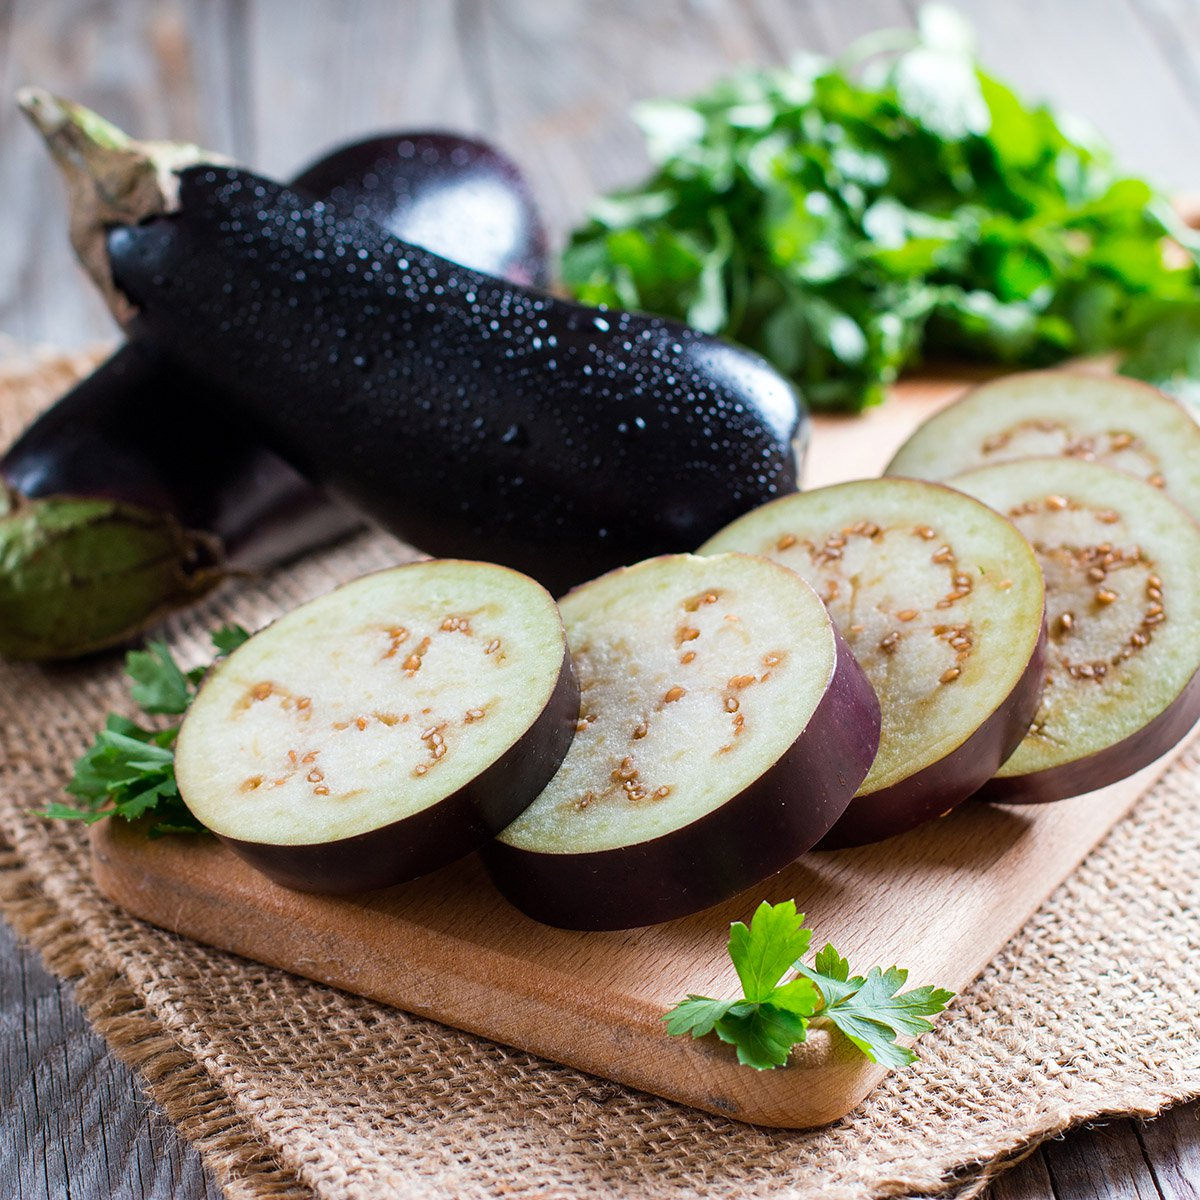 9 Amazing Health Benefits of Eggplants